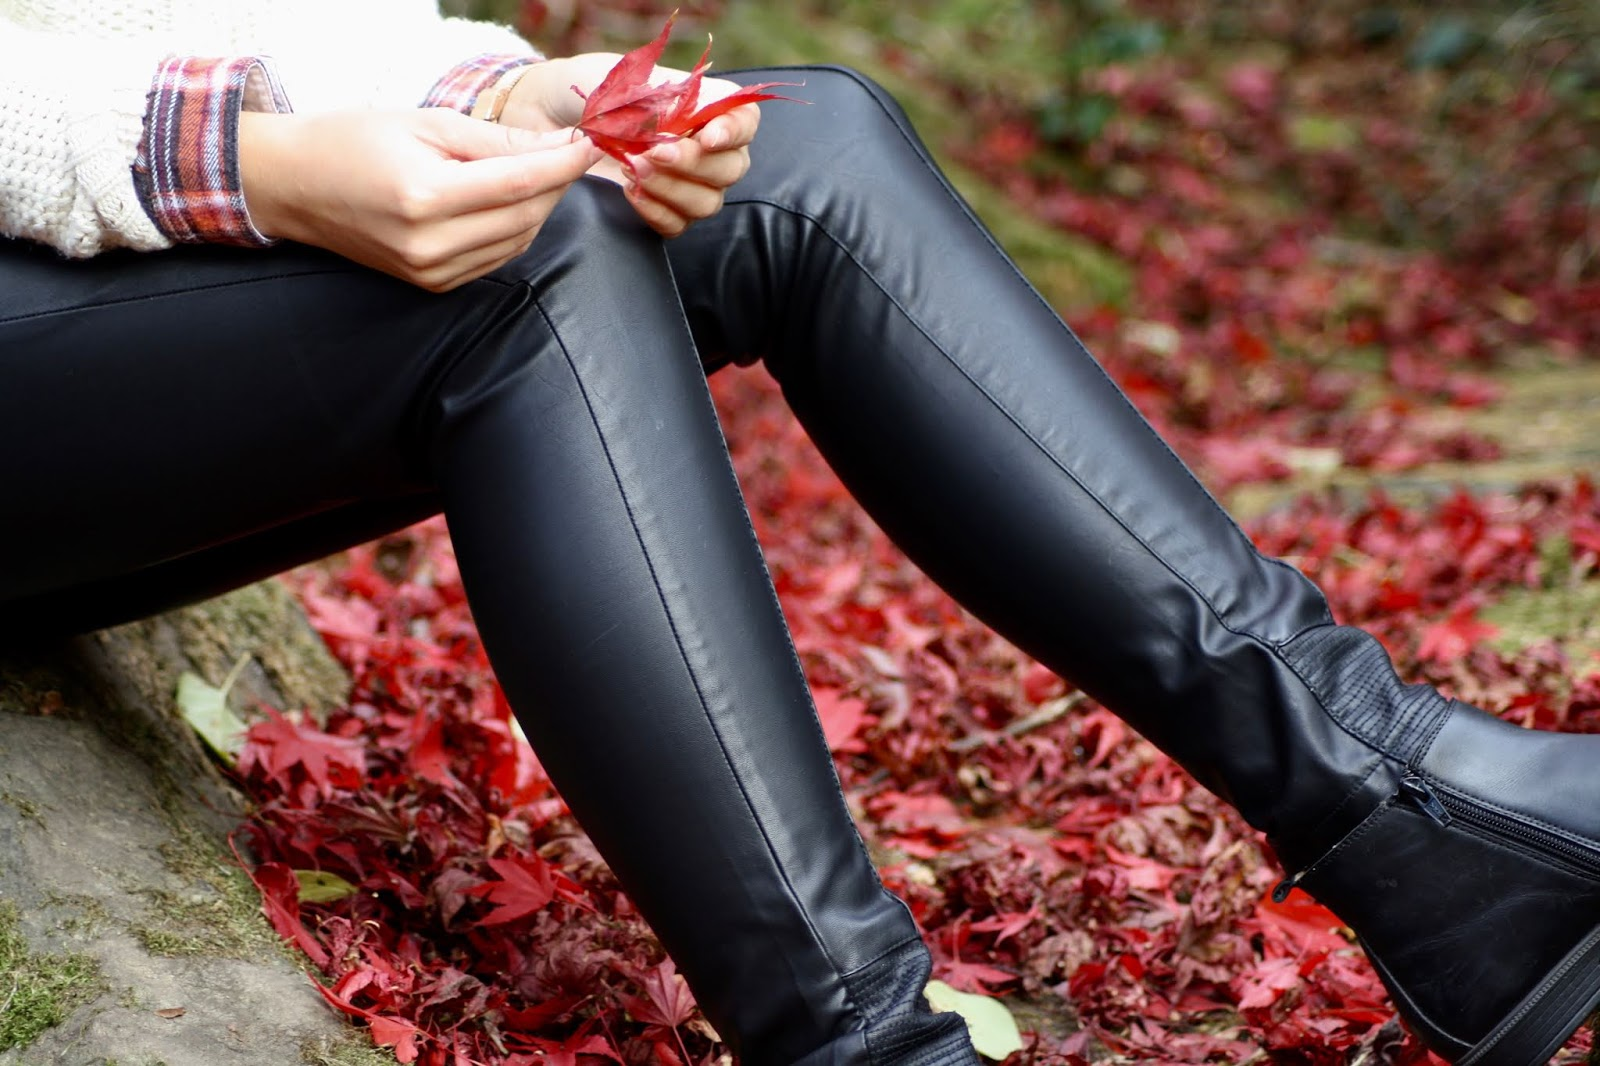 Abbey sits on a rock, holding a red leaf, details of faux leather trousers and cable knit jumper are visible